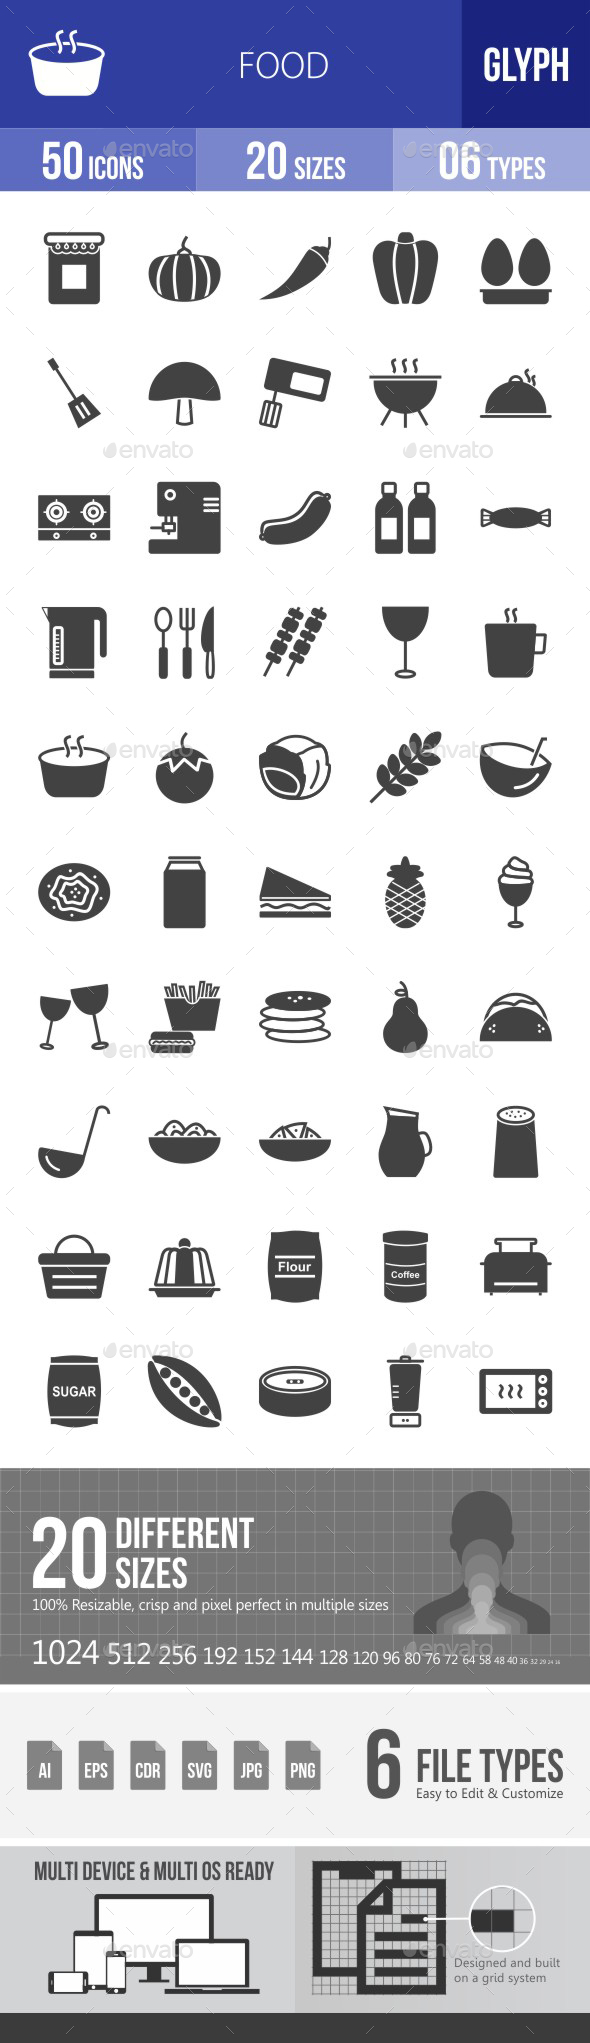 Food Glyph Icons - Icons